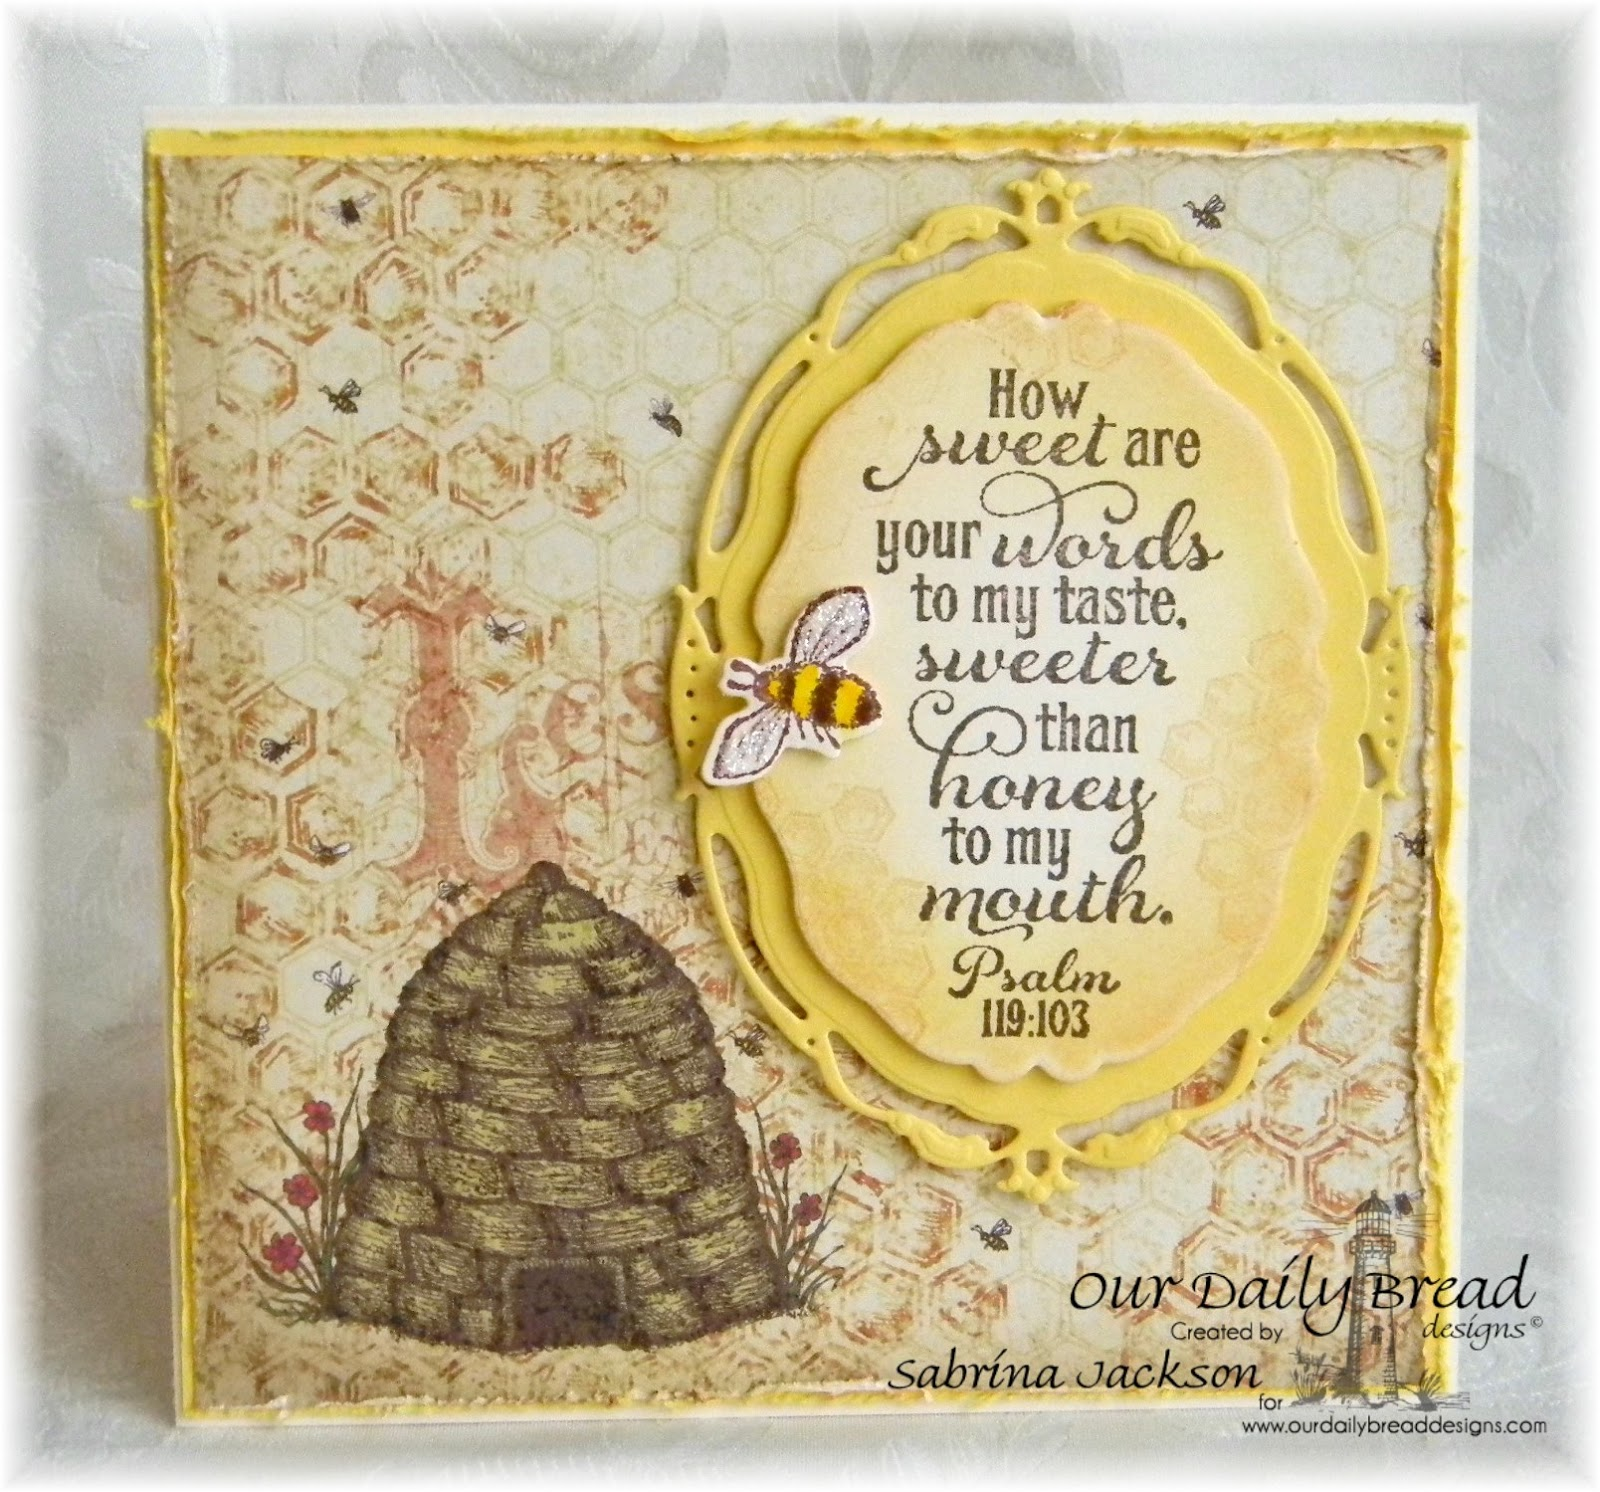 Stamps - Our Daily Bread Designs Bee Happy, Honeycomb Mini Background, Sweeter Than Honey, ODBD Blooming Garden Paper Collection, ODBD Custom Zinnia and Leaves Die